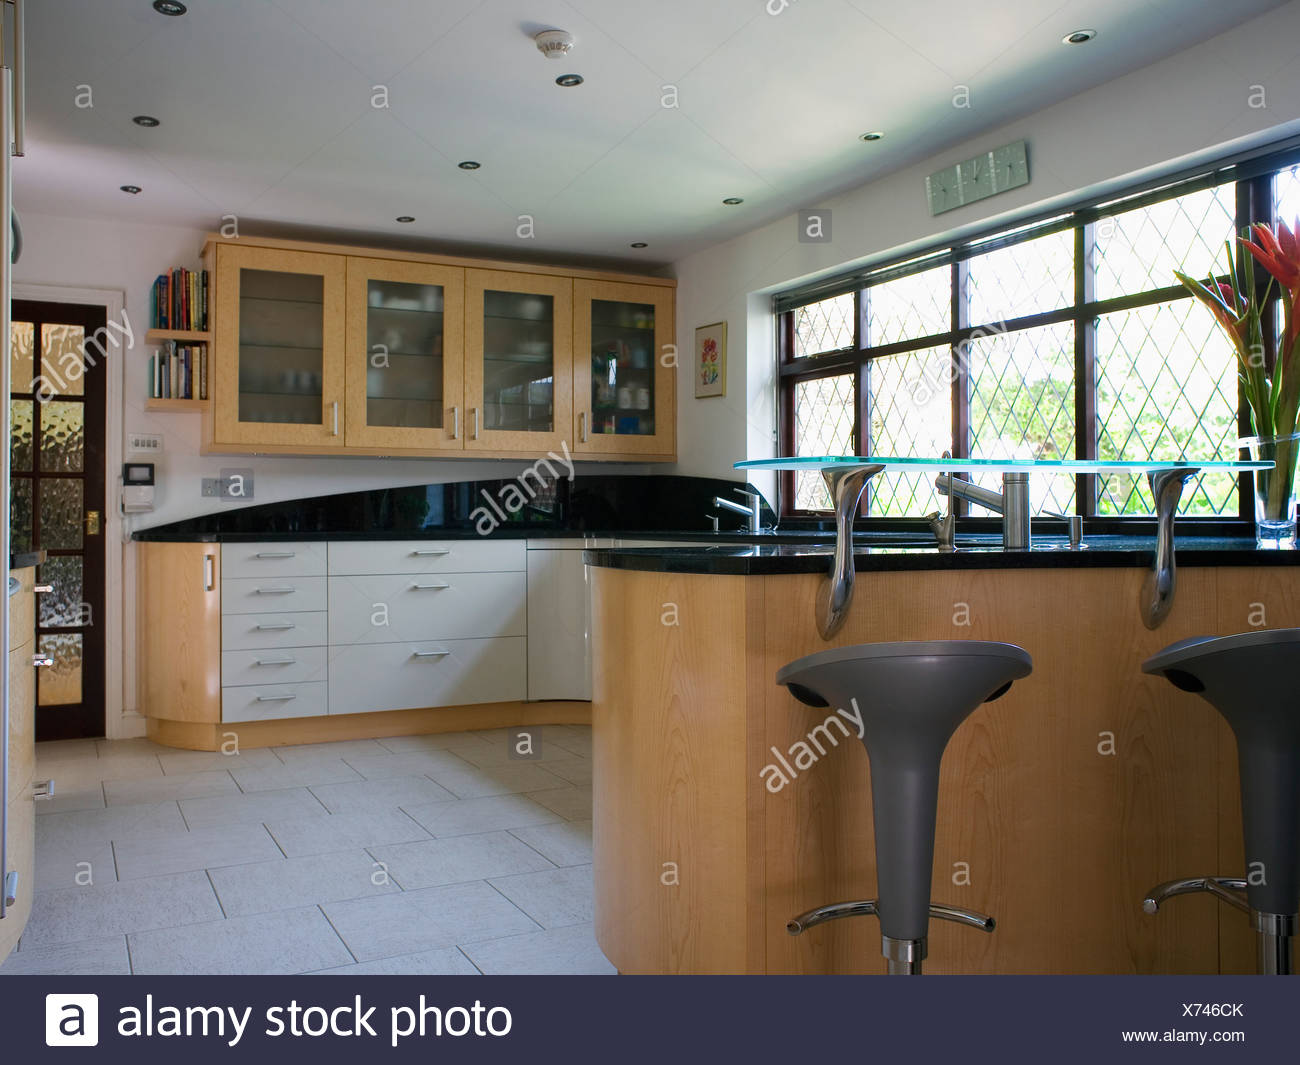 Cream Ceramic Floor Tiles In Modern Country Kitchen With Raised Glass Shelf  On Breakfast Bar